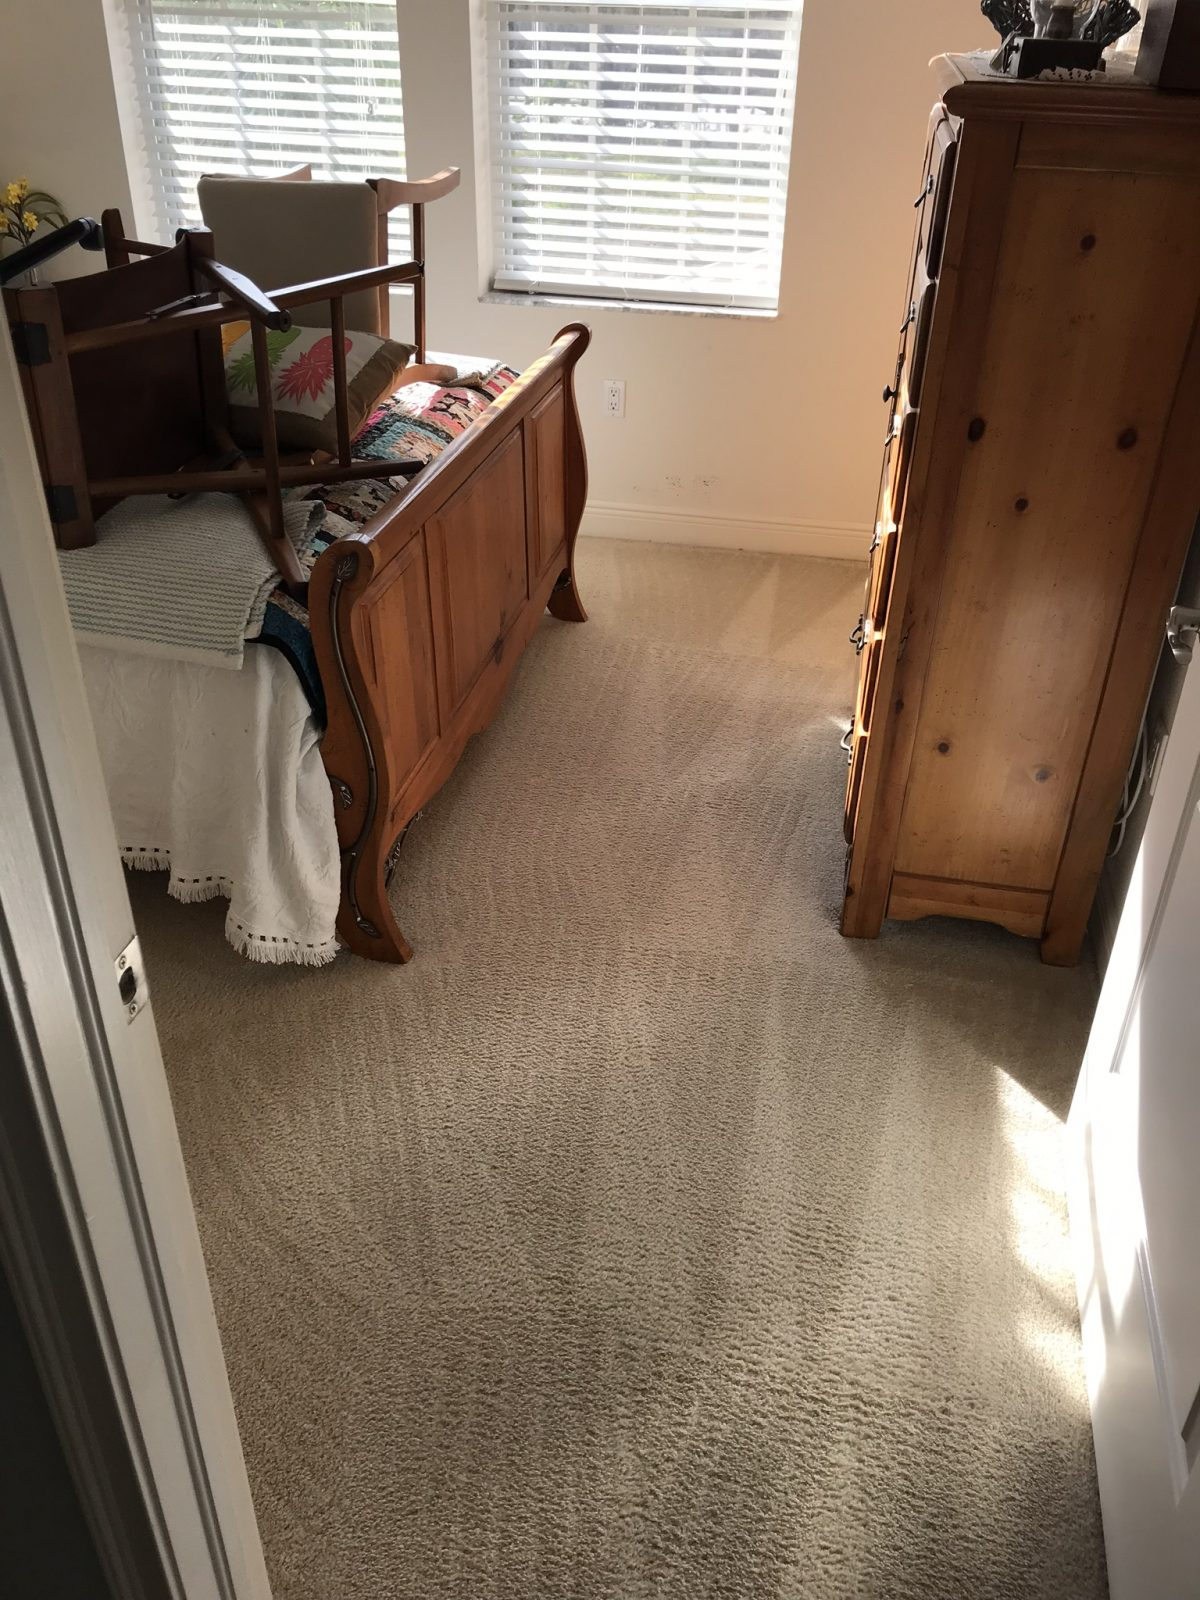 Professional Carpet Cleaning Dunedin Florida by Howards Cleaning Service